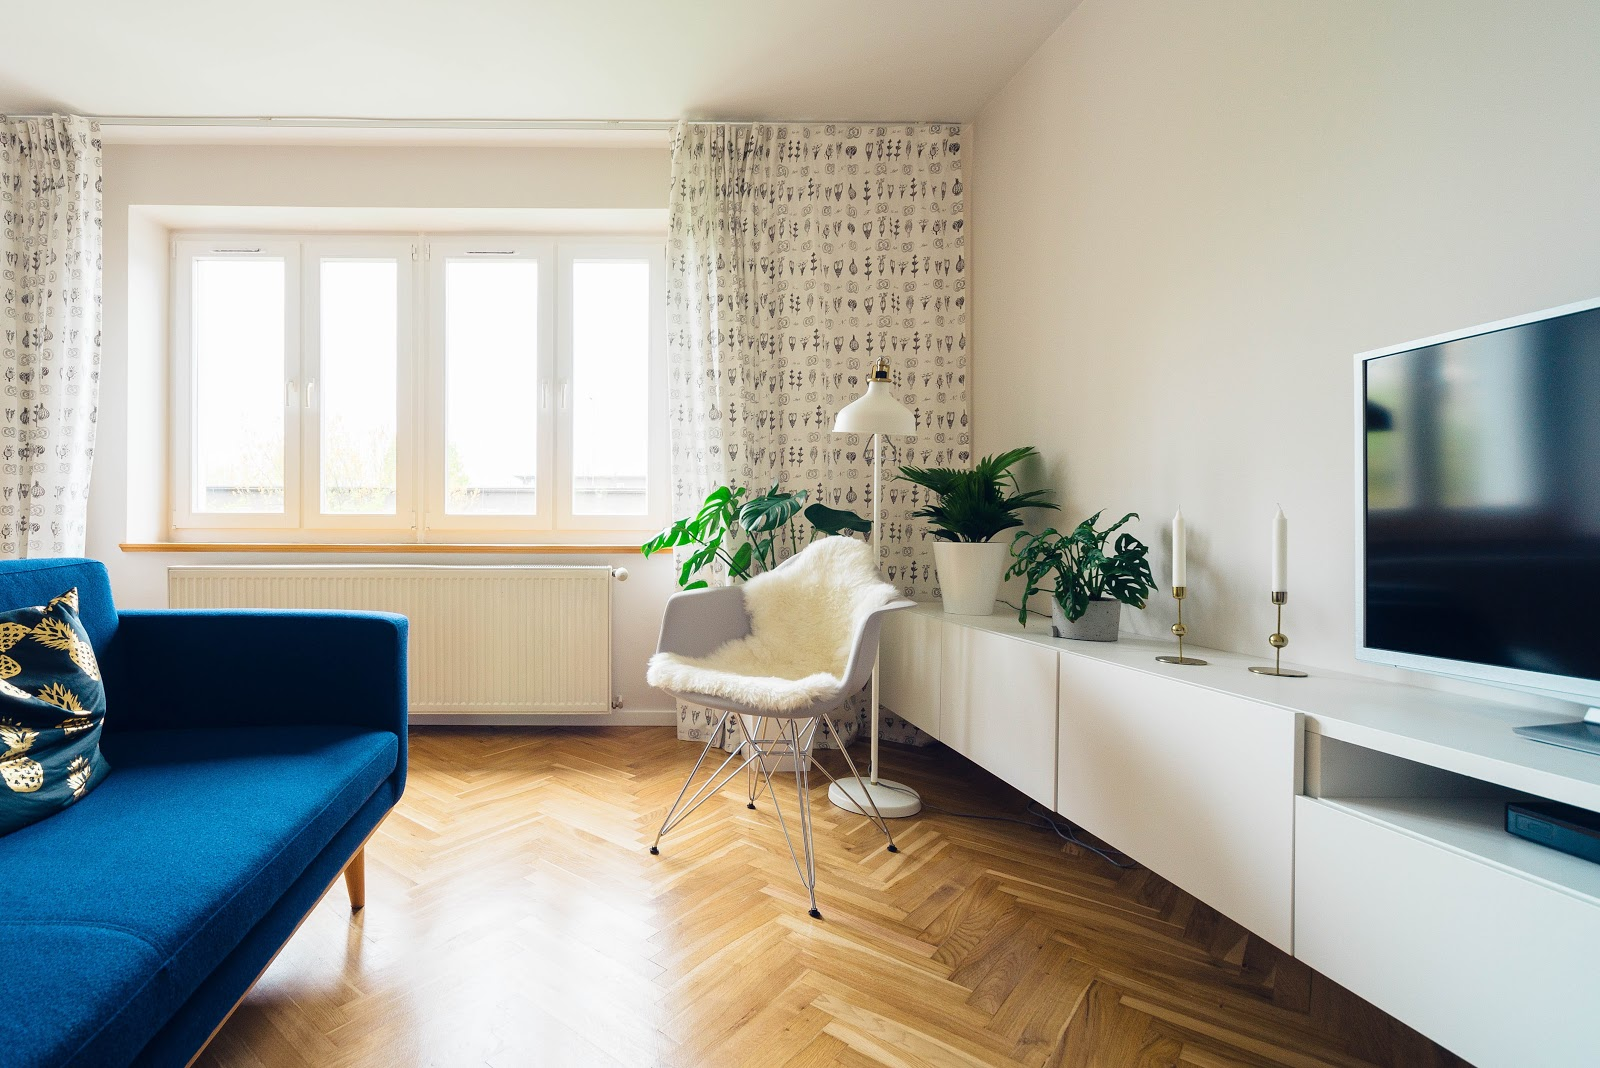 7 Ways To Give Your Home Some TLC In 2019